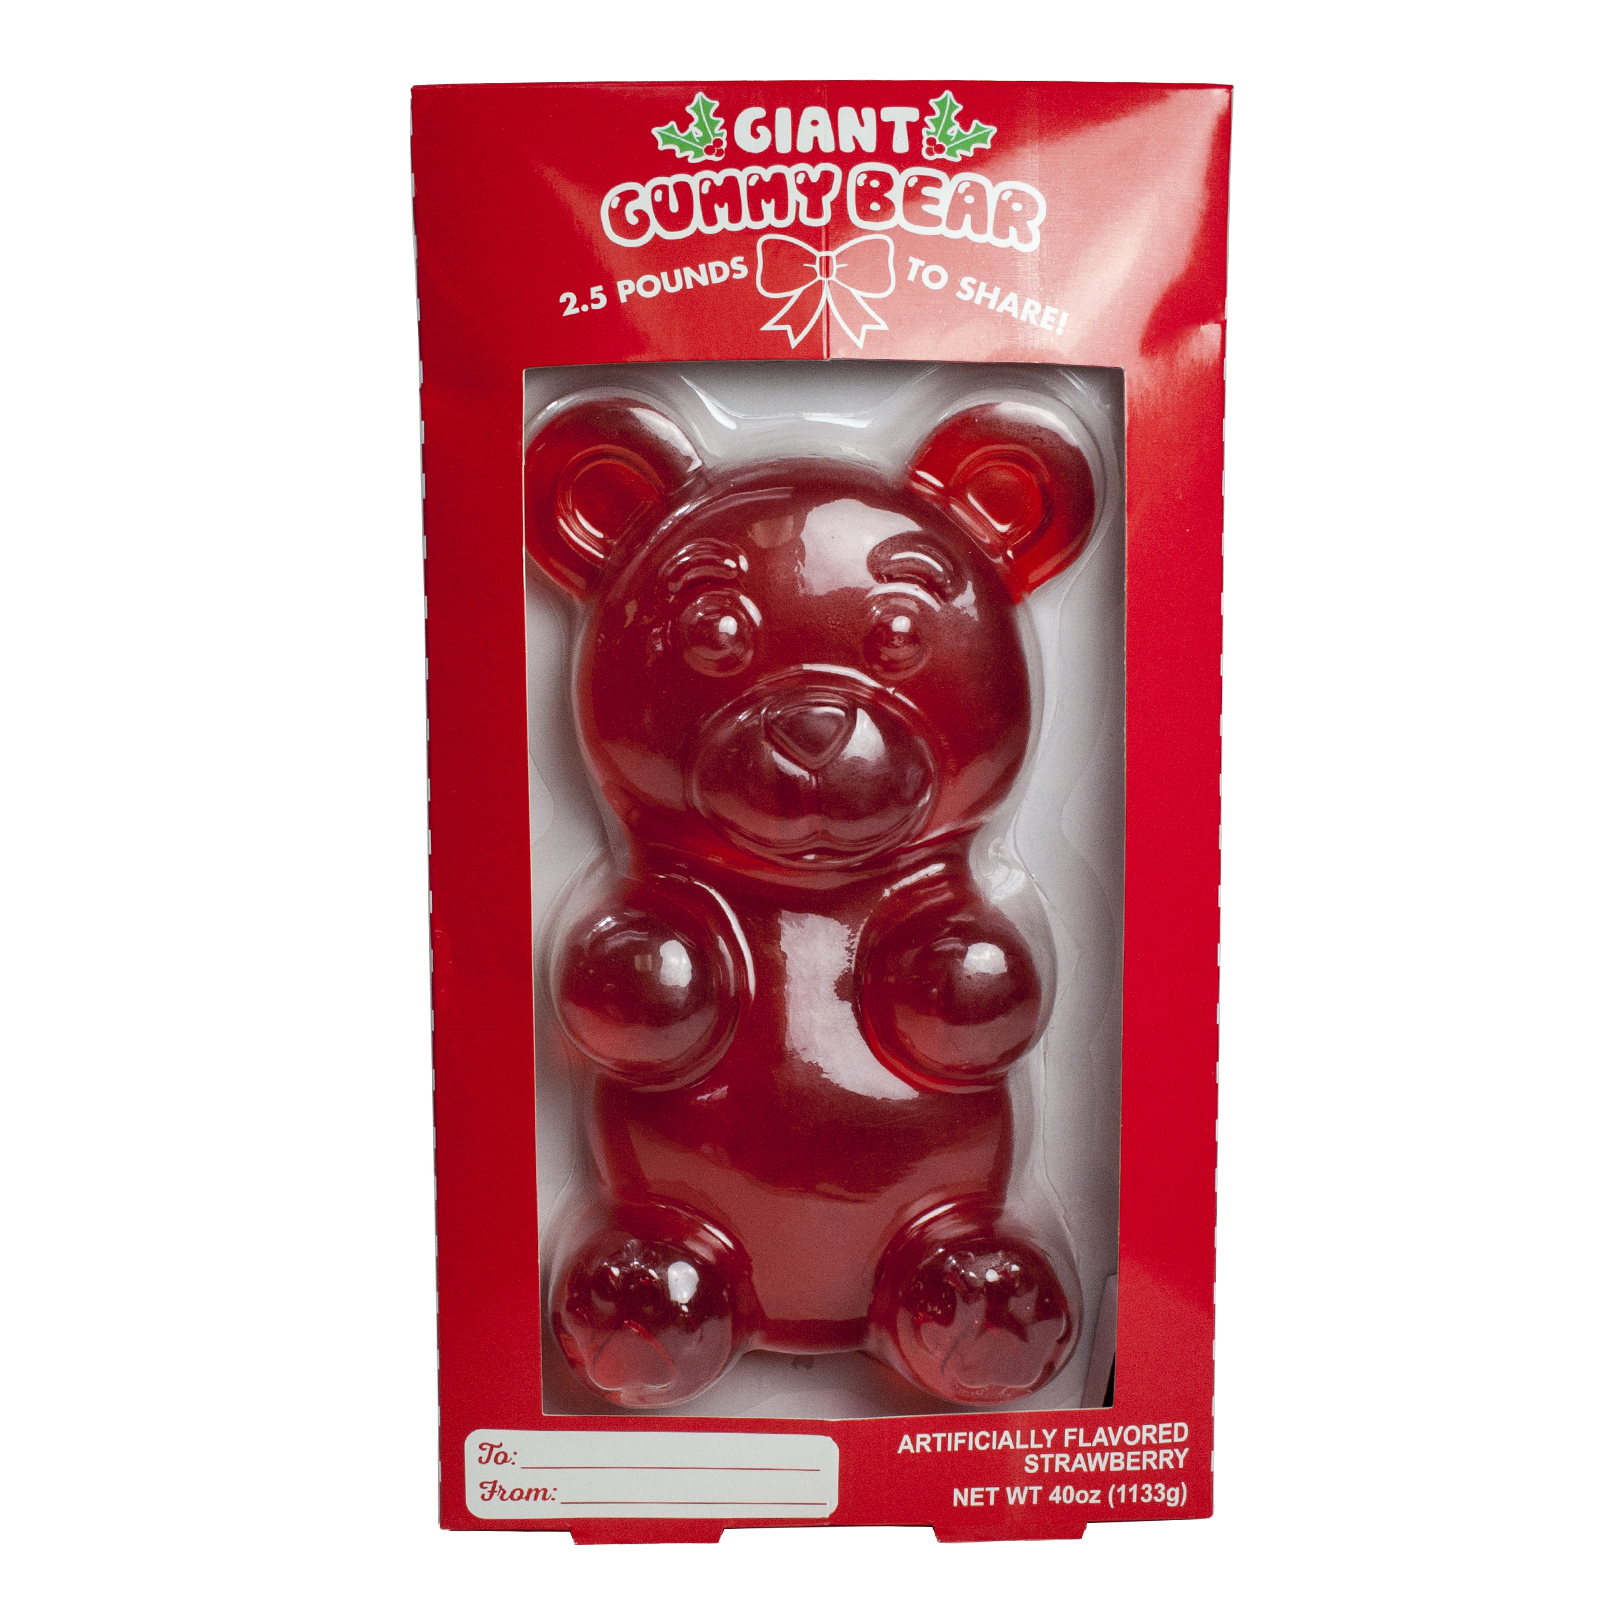 Giant gummy bear candy